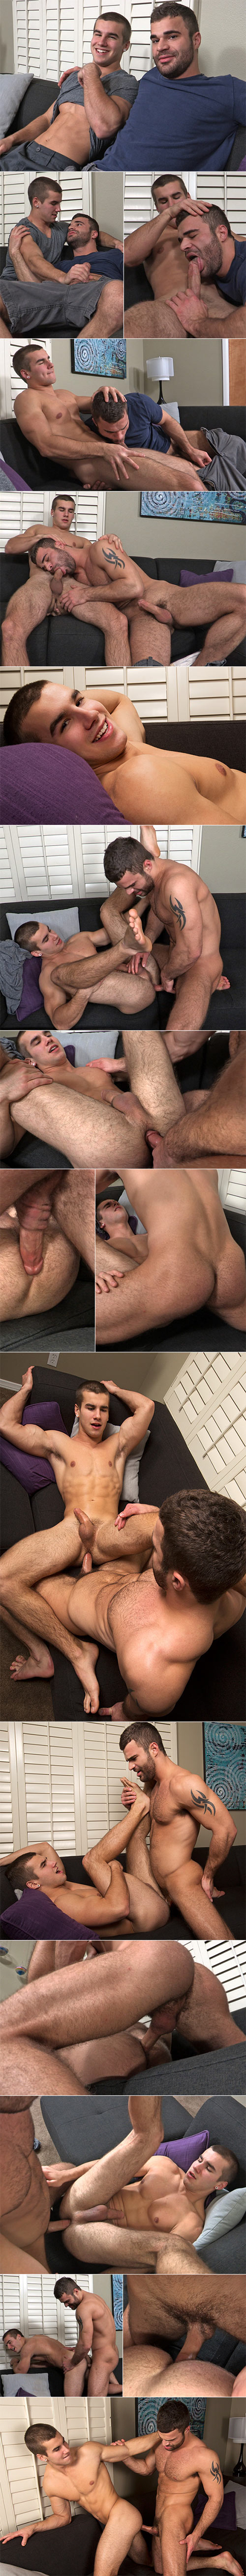 SeanCody: Pavel pops Stu's ass cherry